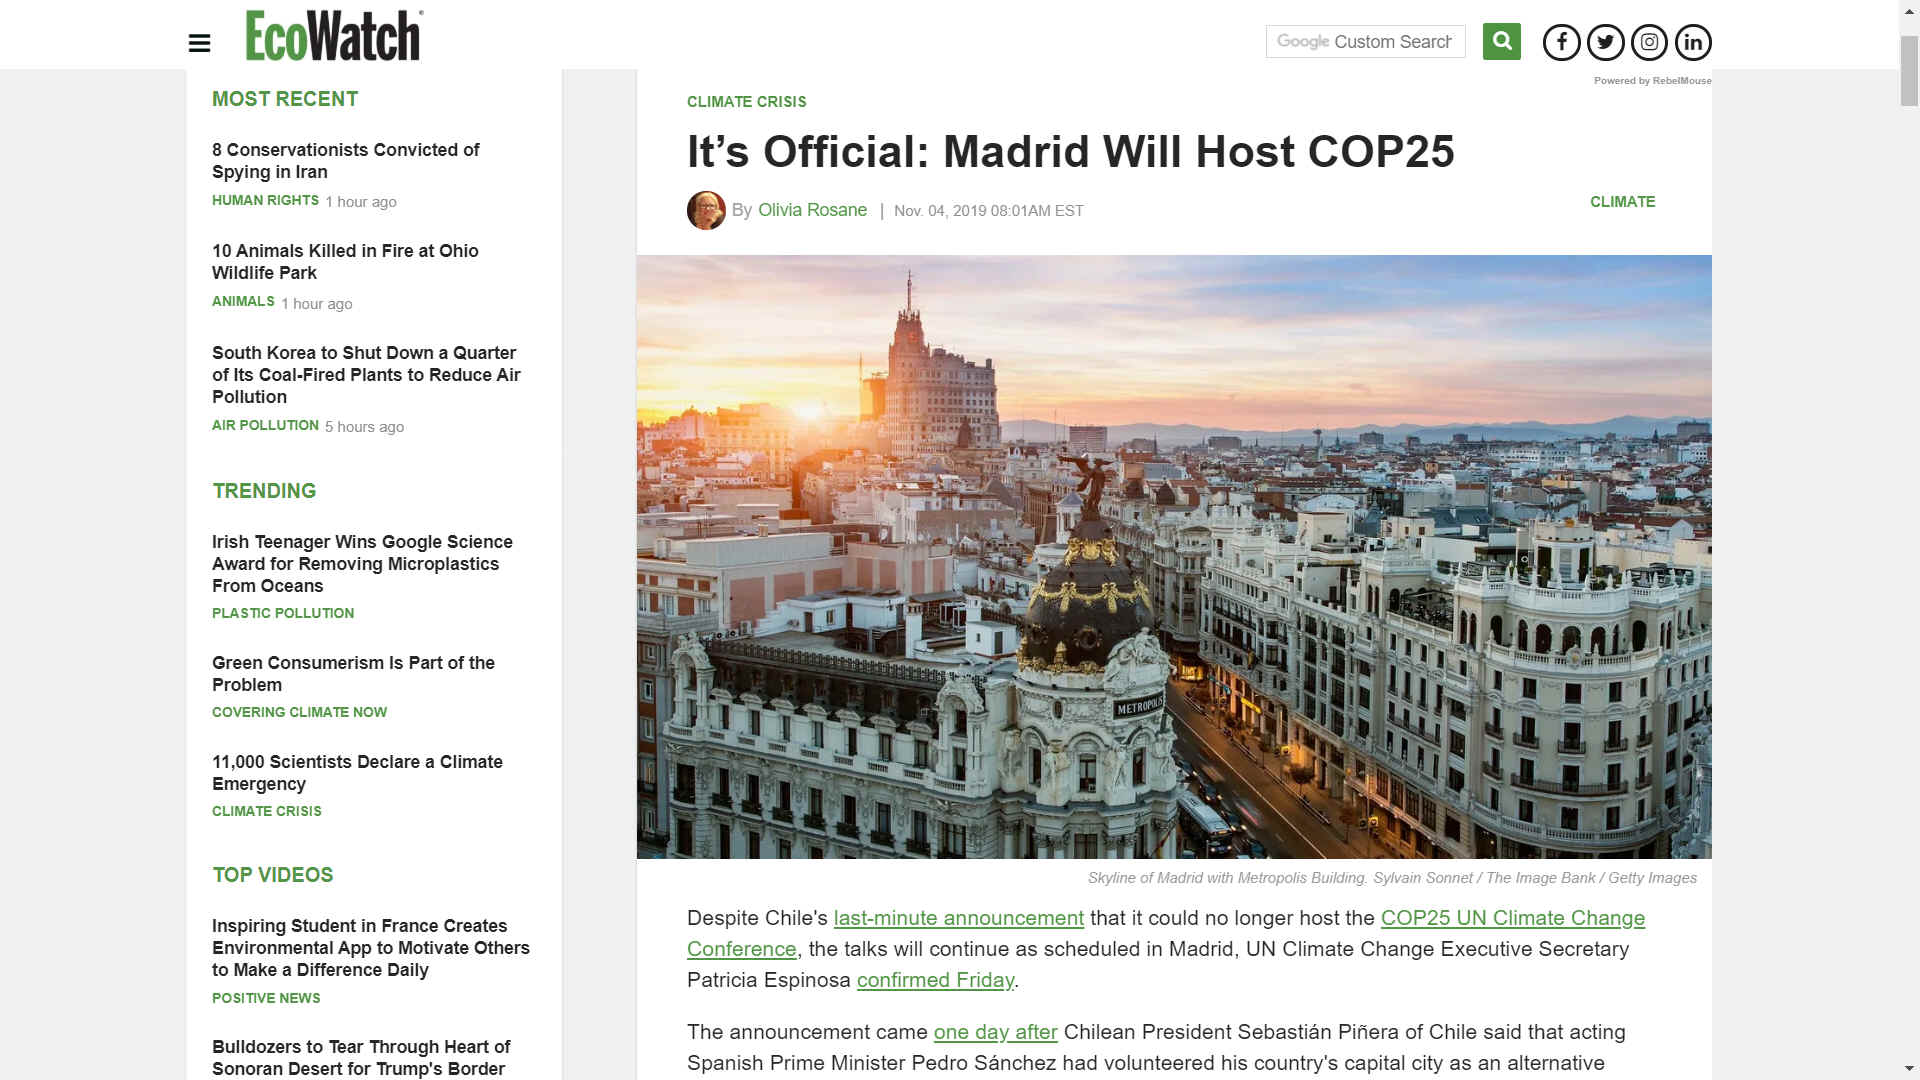 Madrid to host climate change talks COP 25 in December 2019